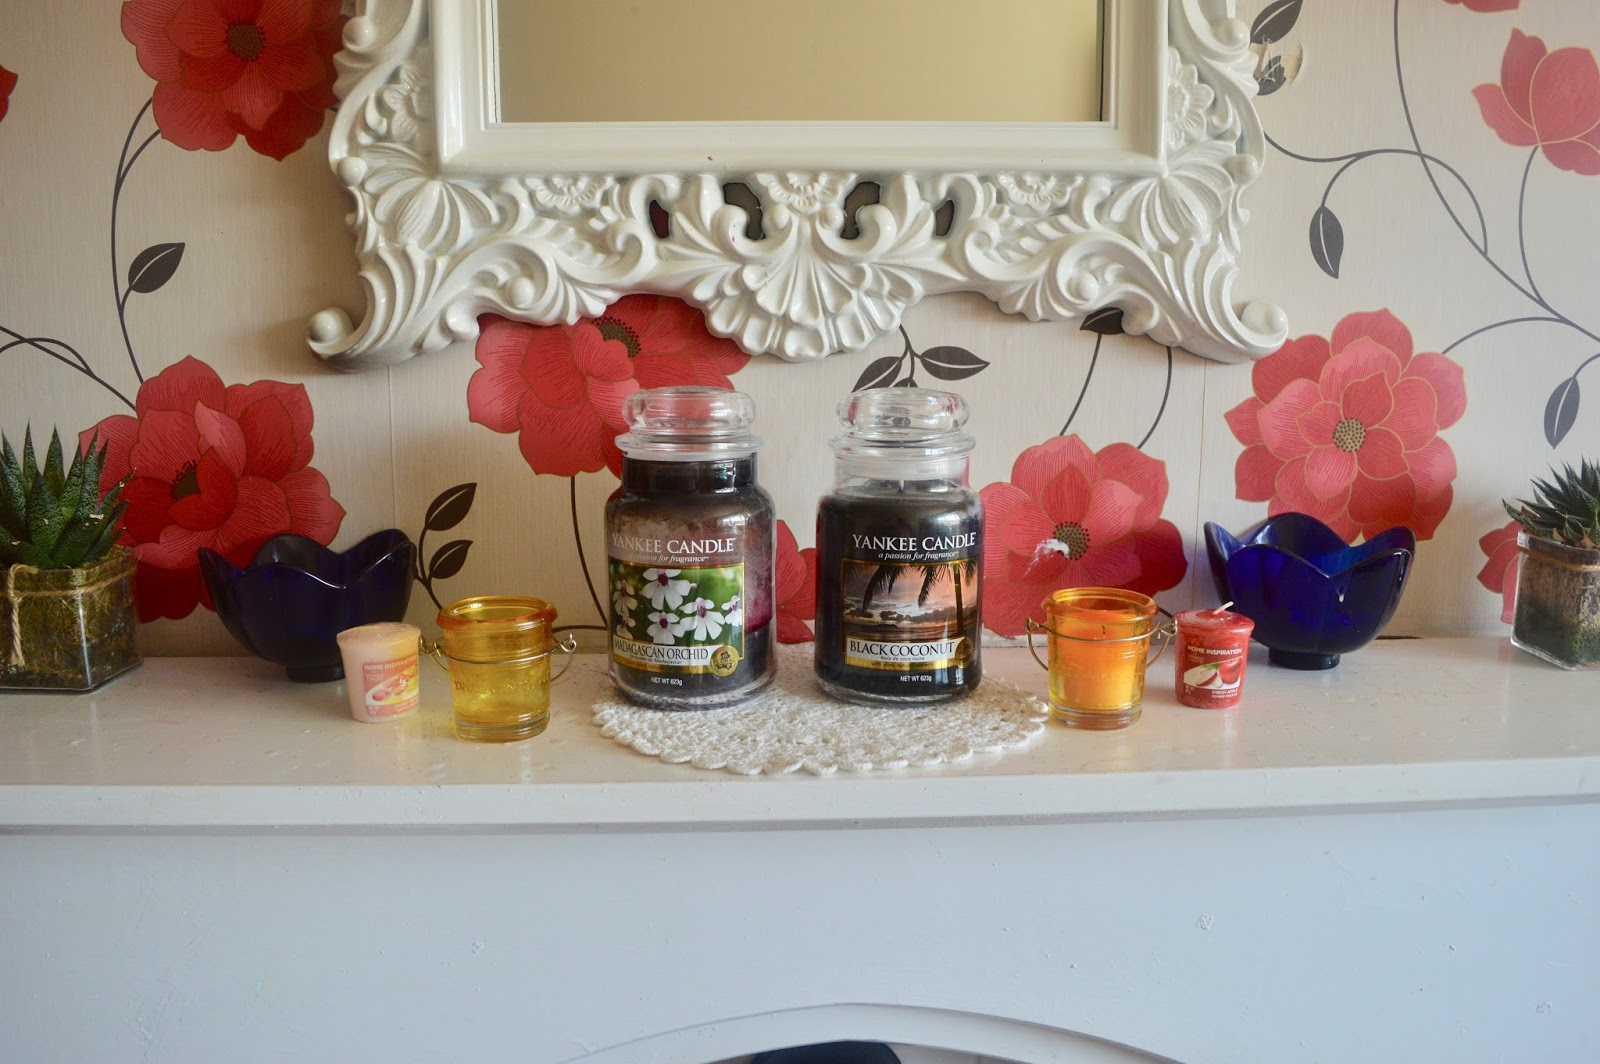 yankee candle black coconut review